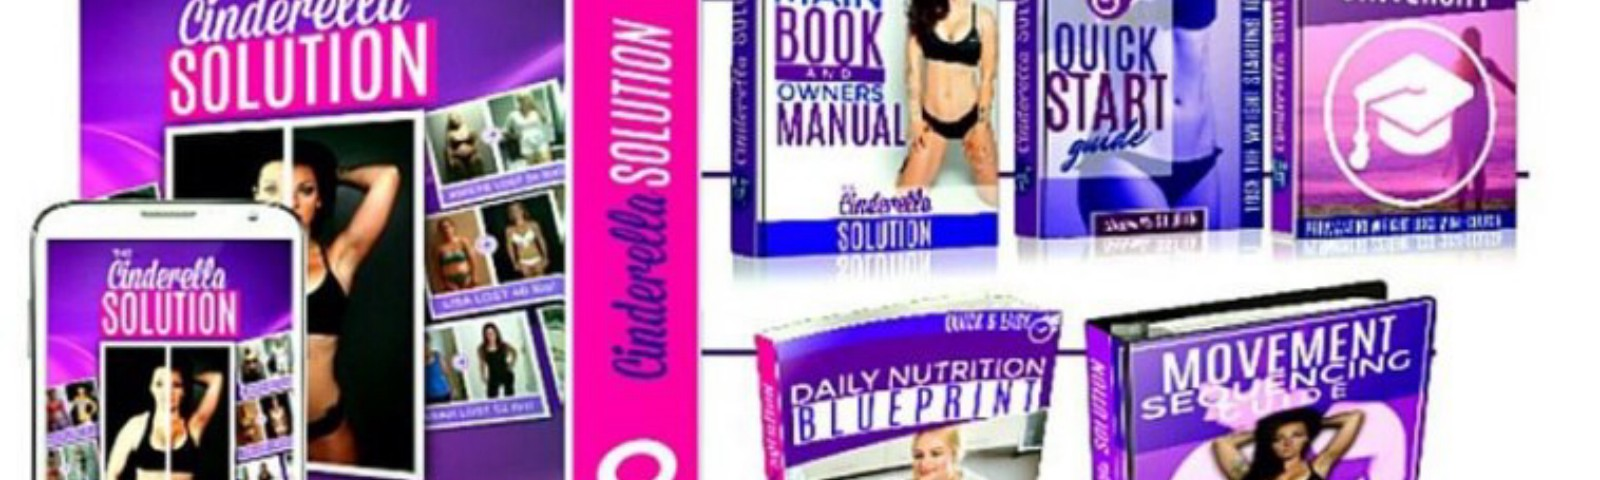 Cinderella Solution Diet  Tutorial Pdf